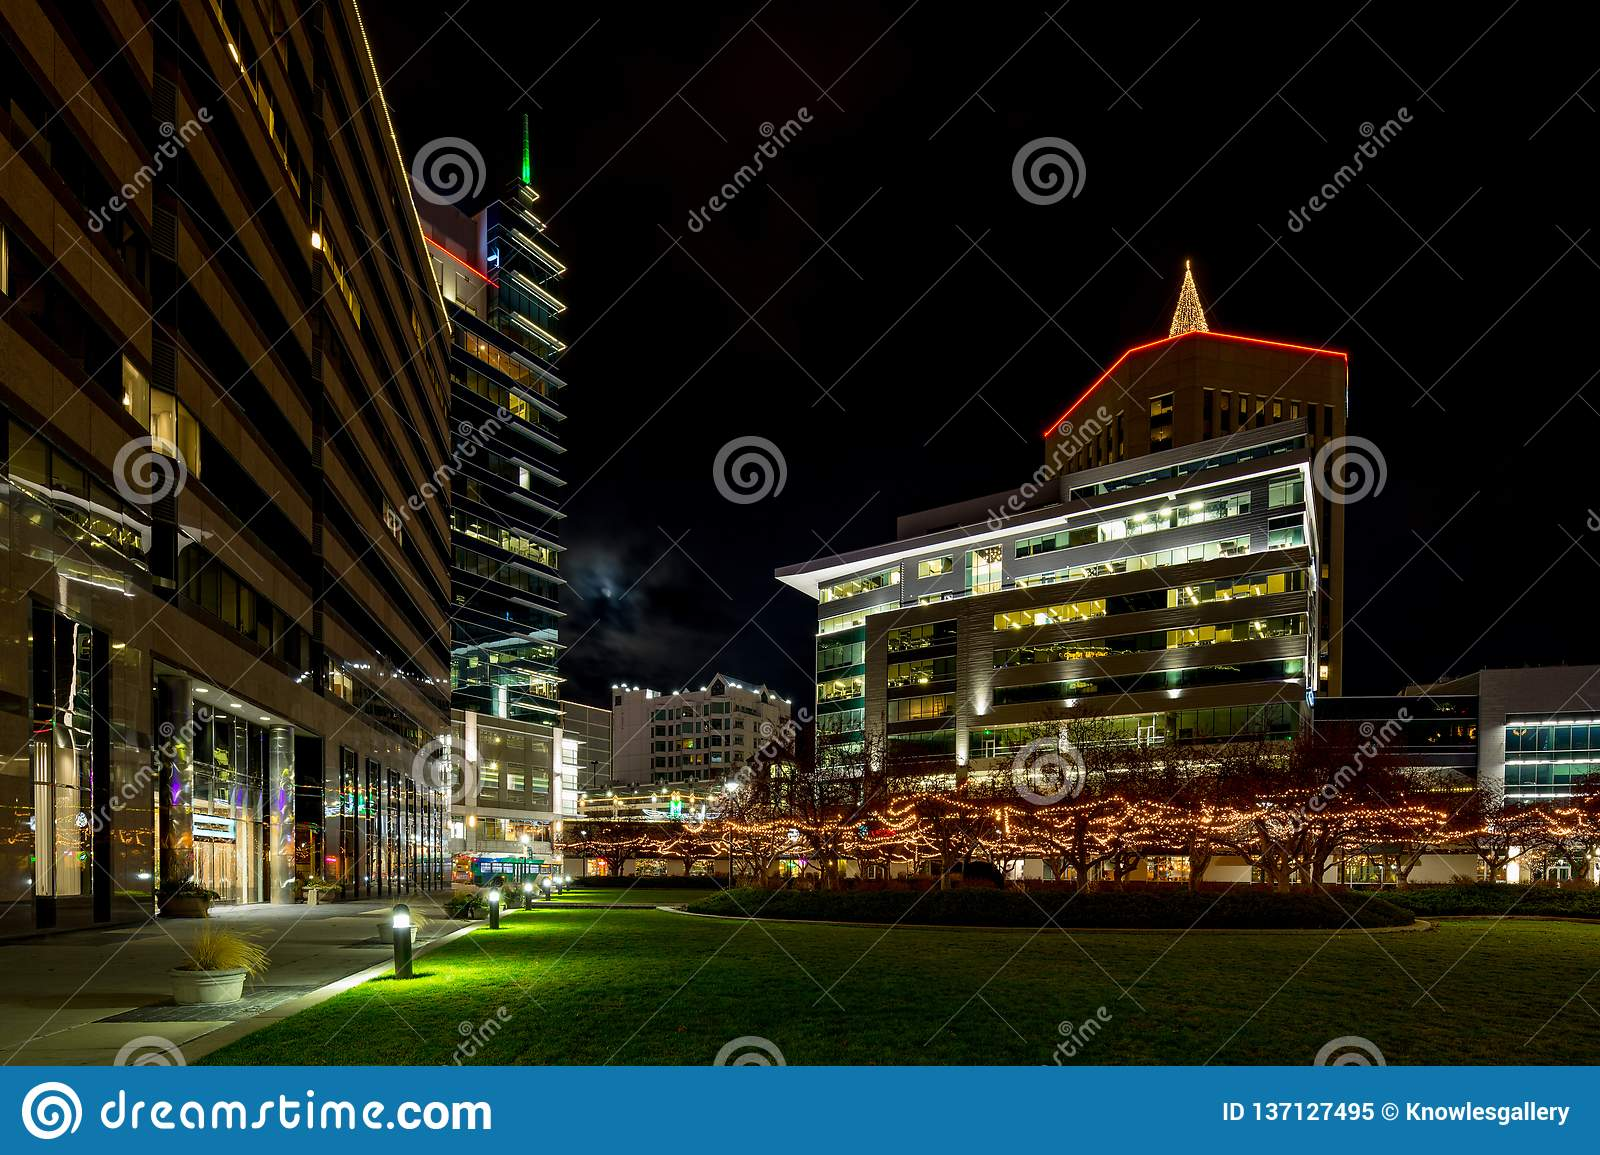 Christmas Lights Boise.Public Square In Downtown Boise Idaho At Night With Many